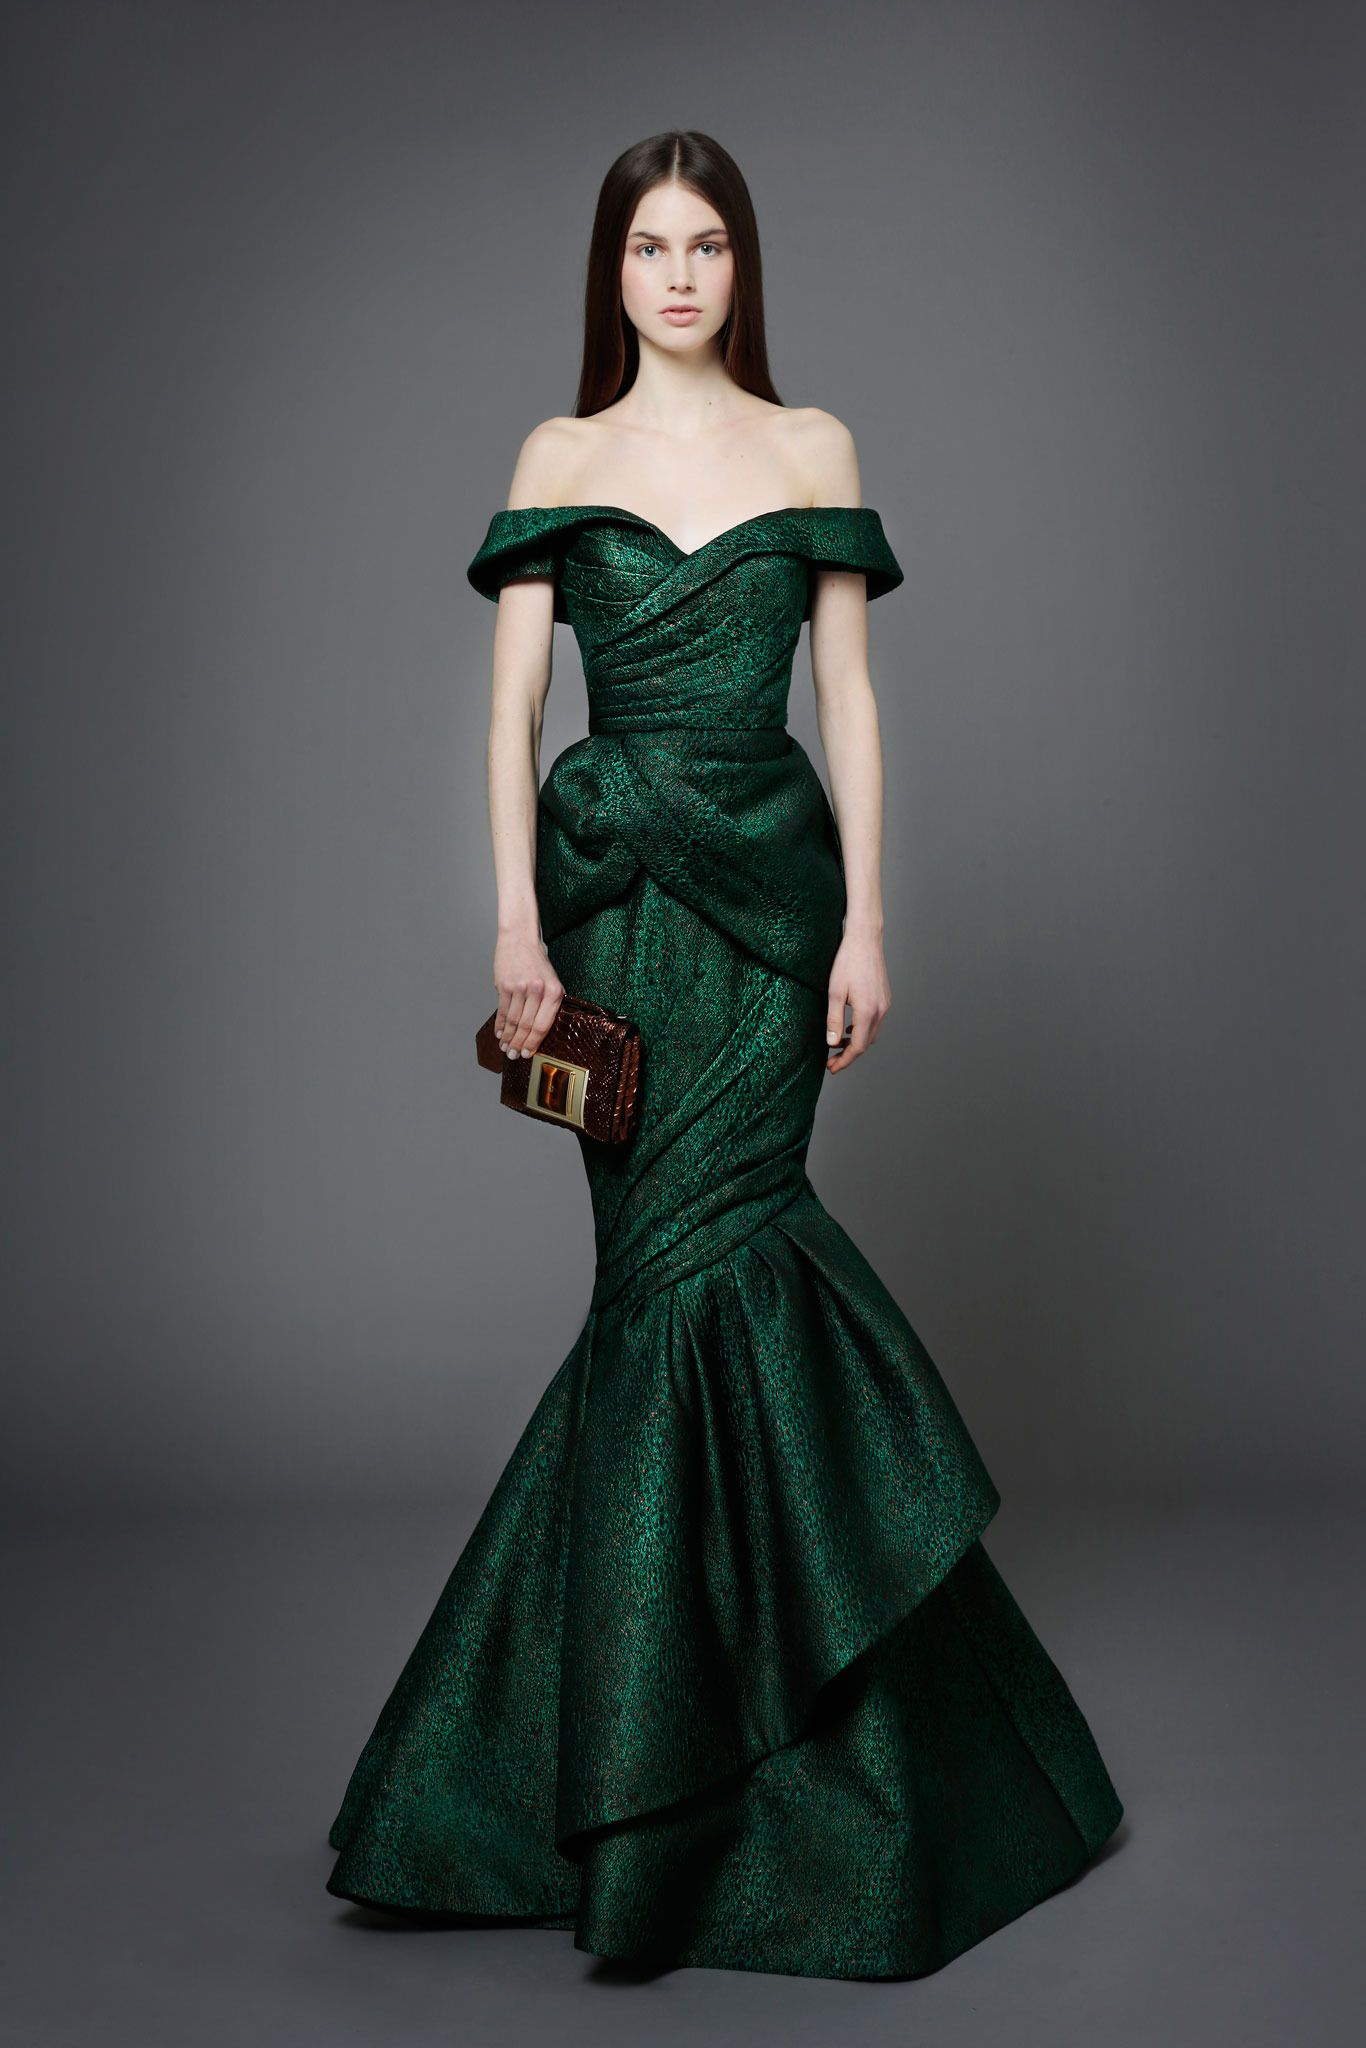 Emerald green dress for wedding  andrewgnx on FASHIONTOGRAPHER